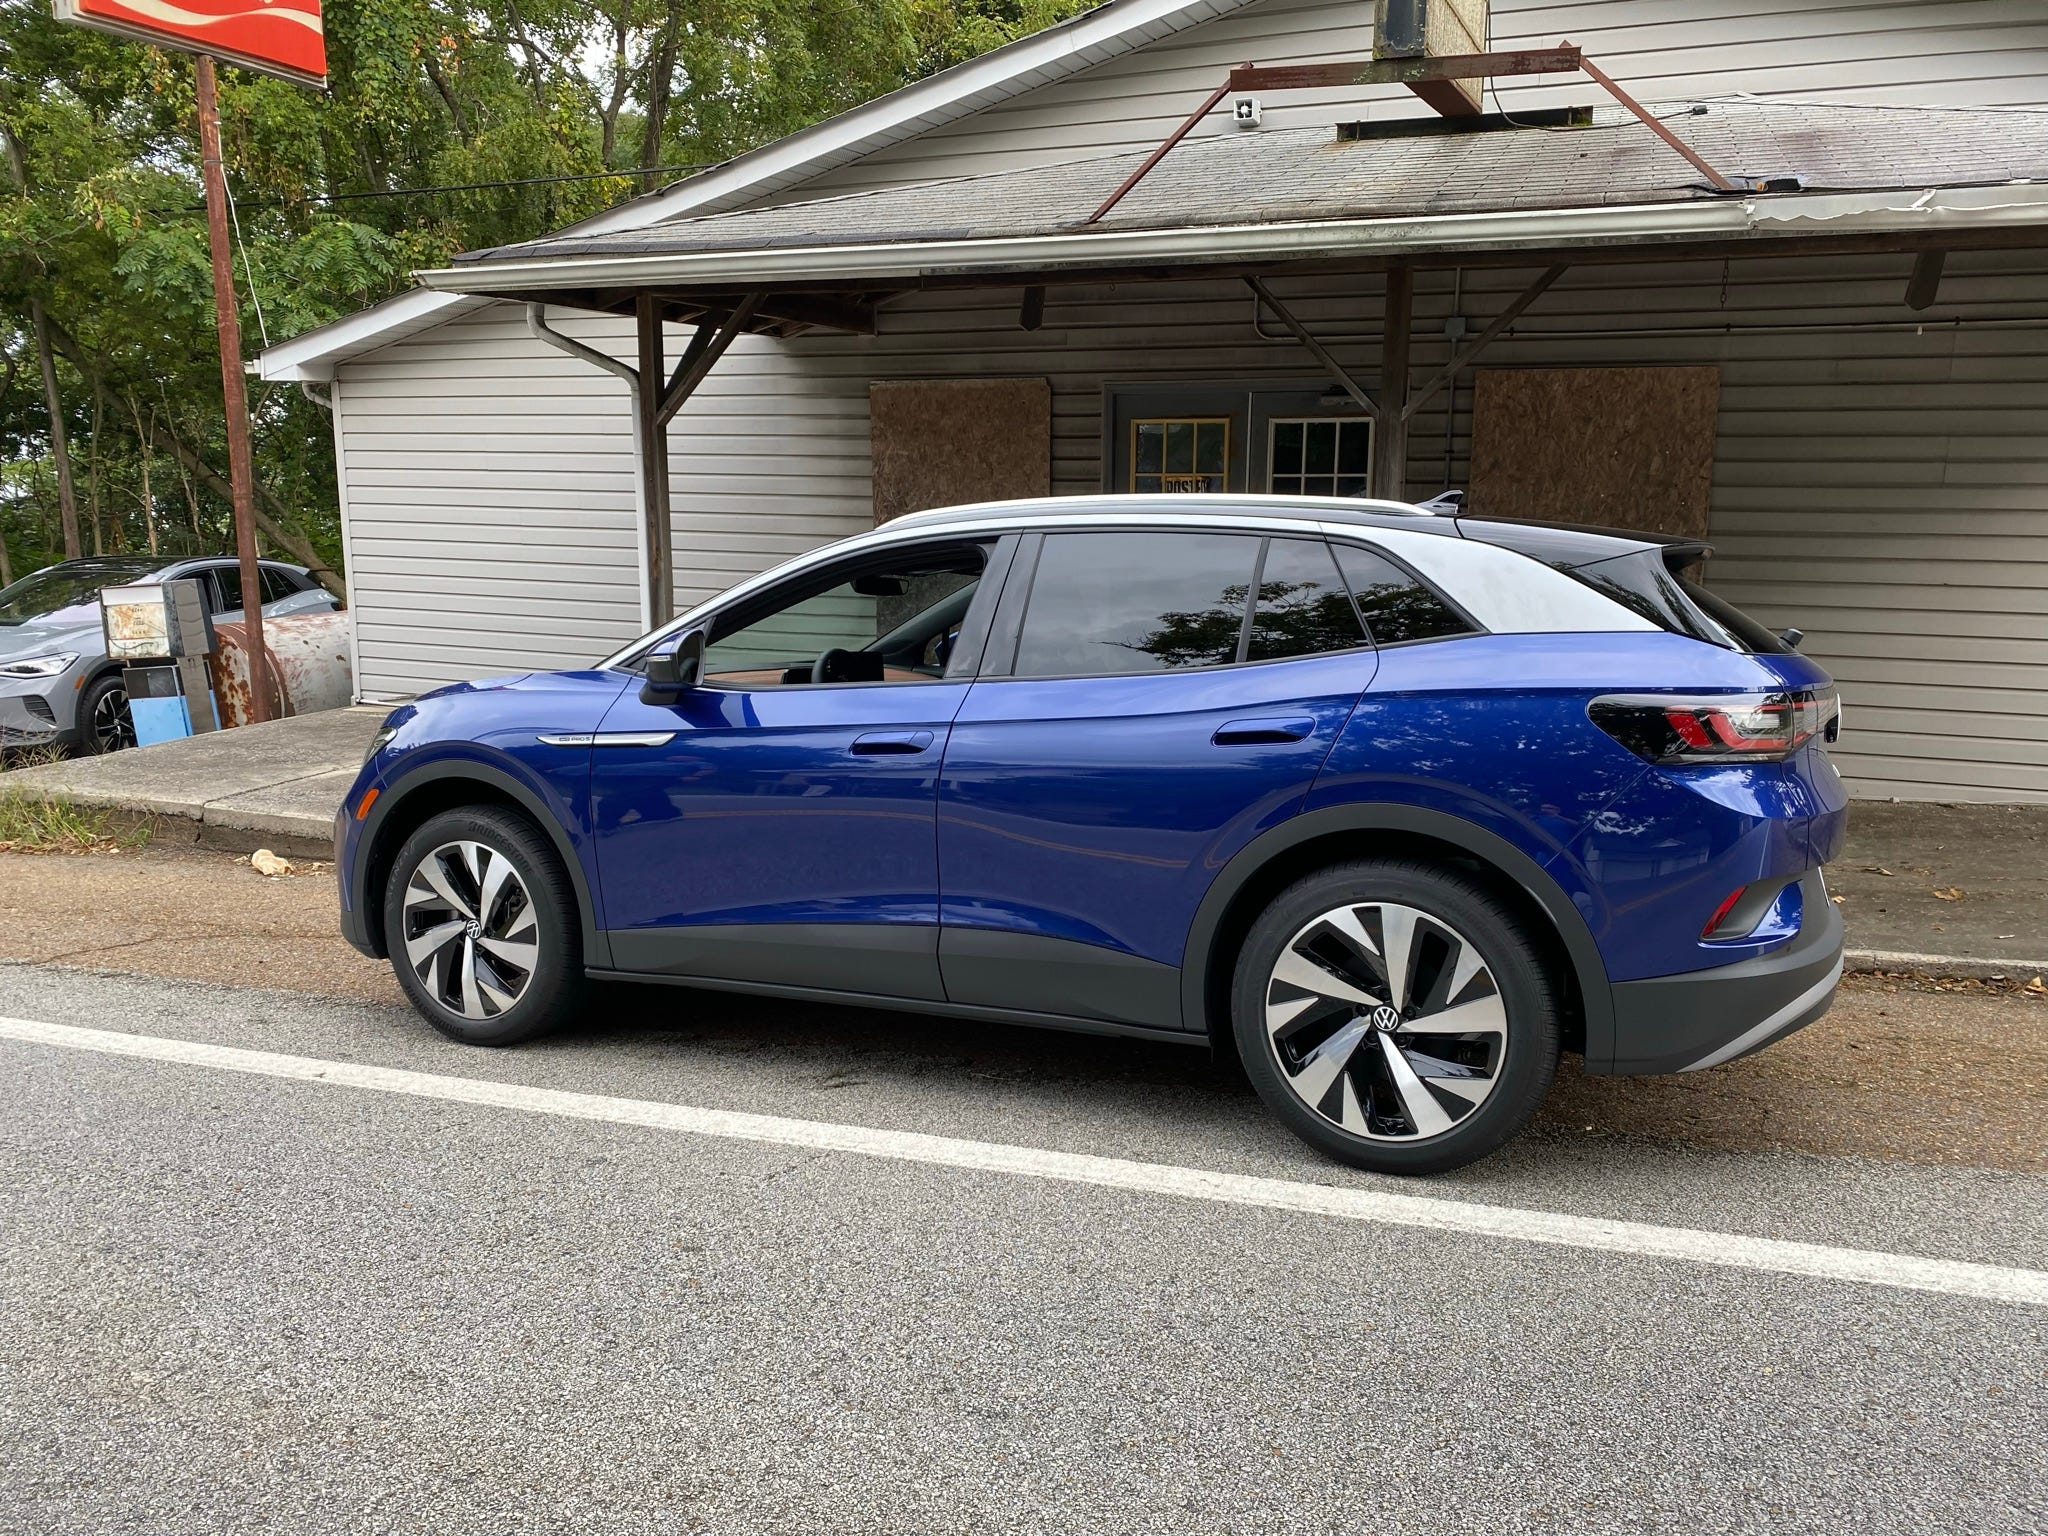 2021 Volkswagen ID4 AWD: Here's why the electric vehicle belongs on America's shopping list